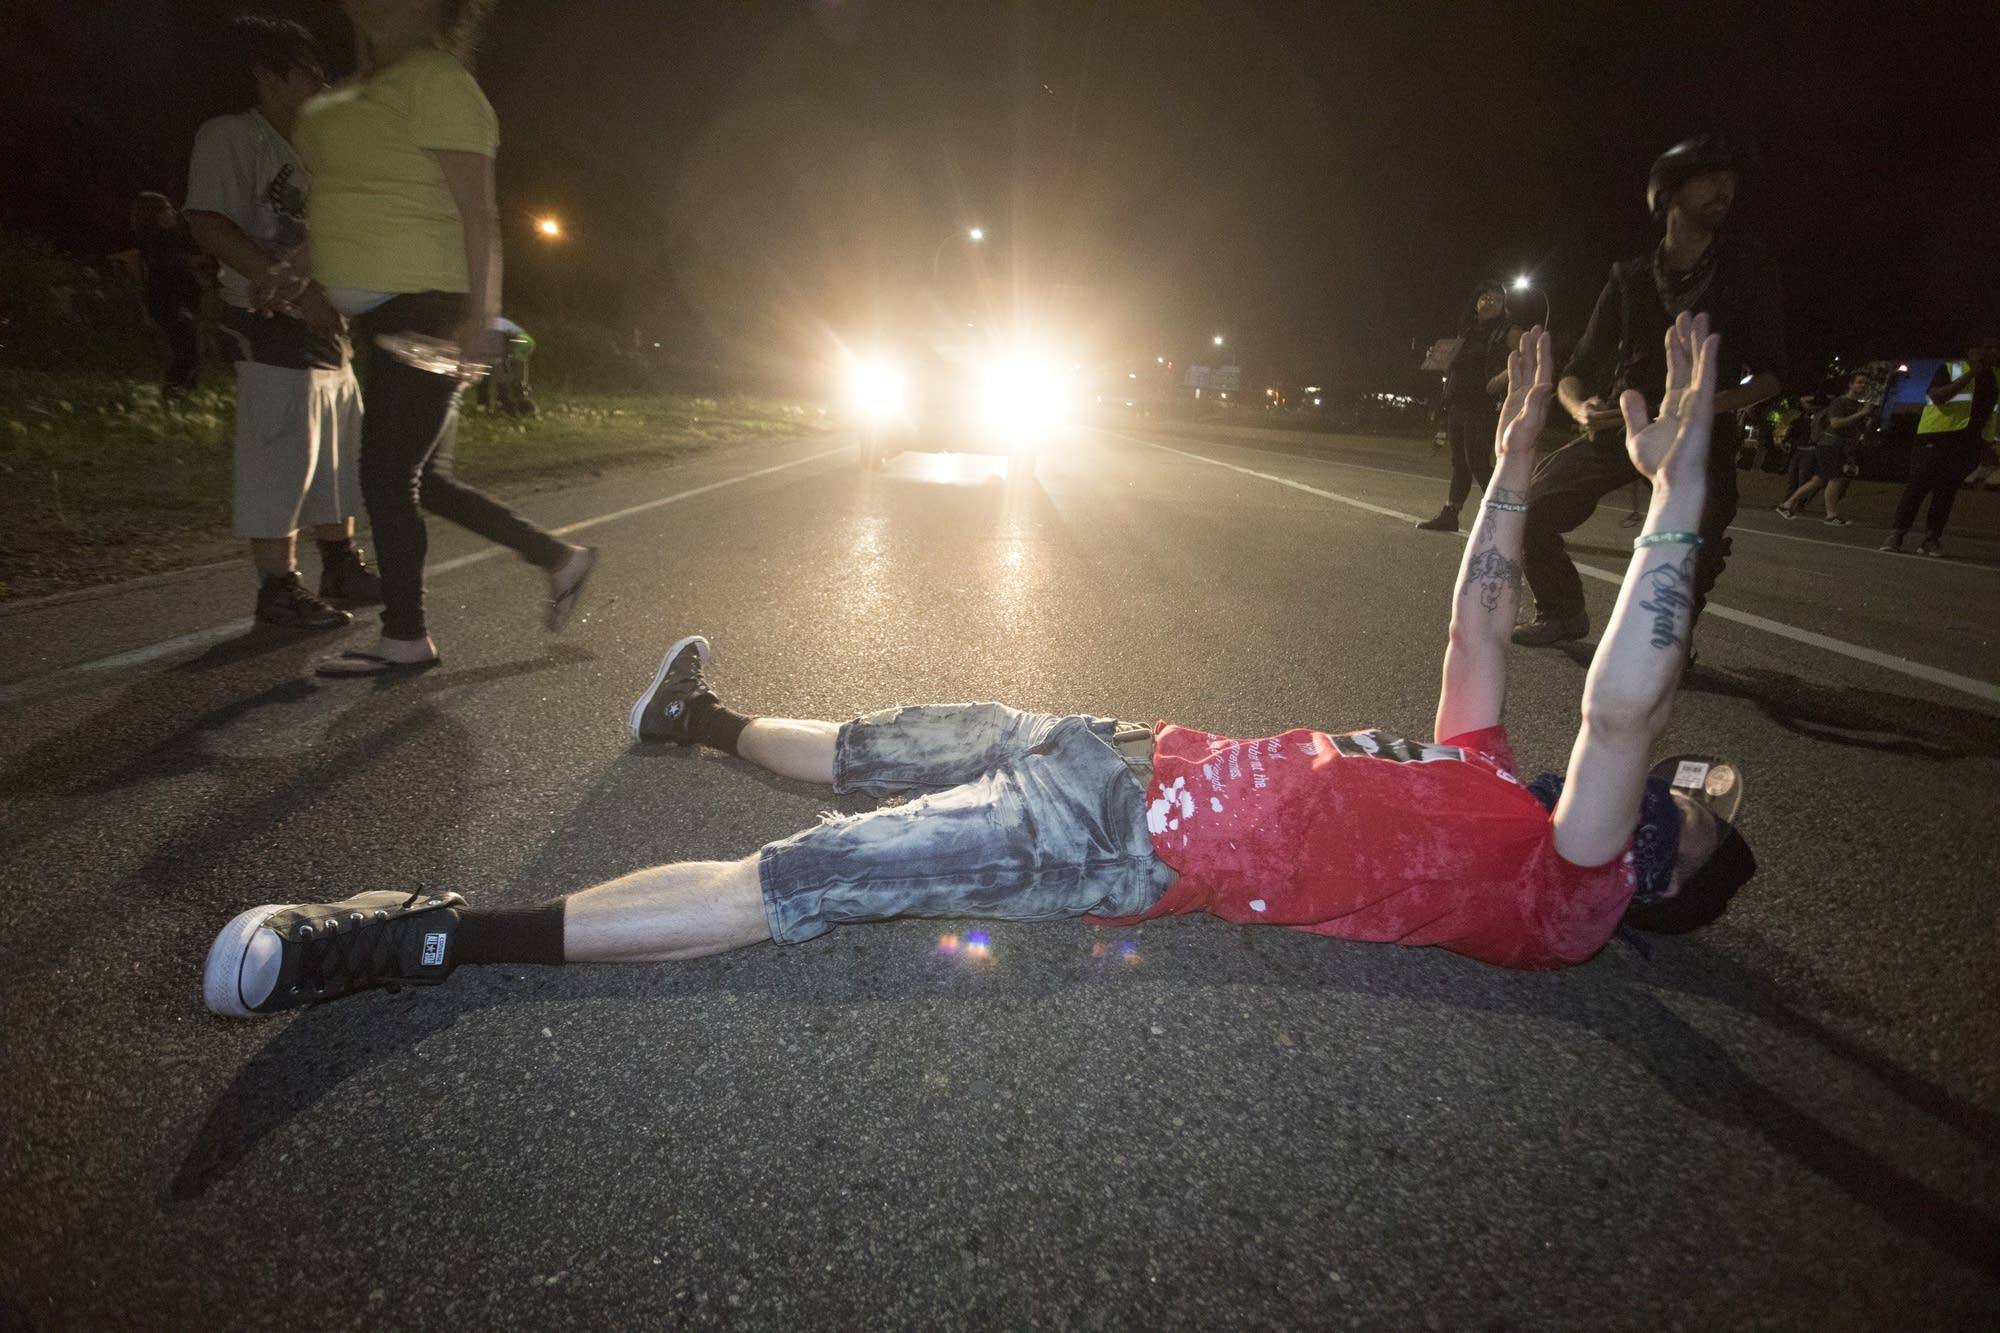 A protester lay on the road in front of a vehicle.